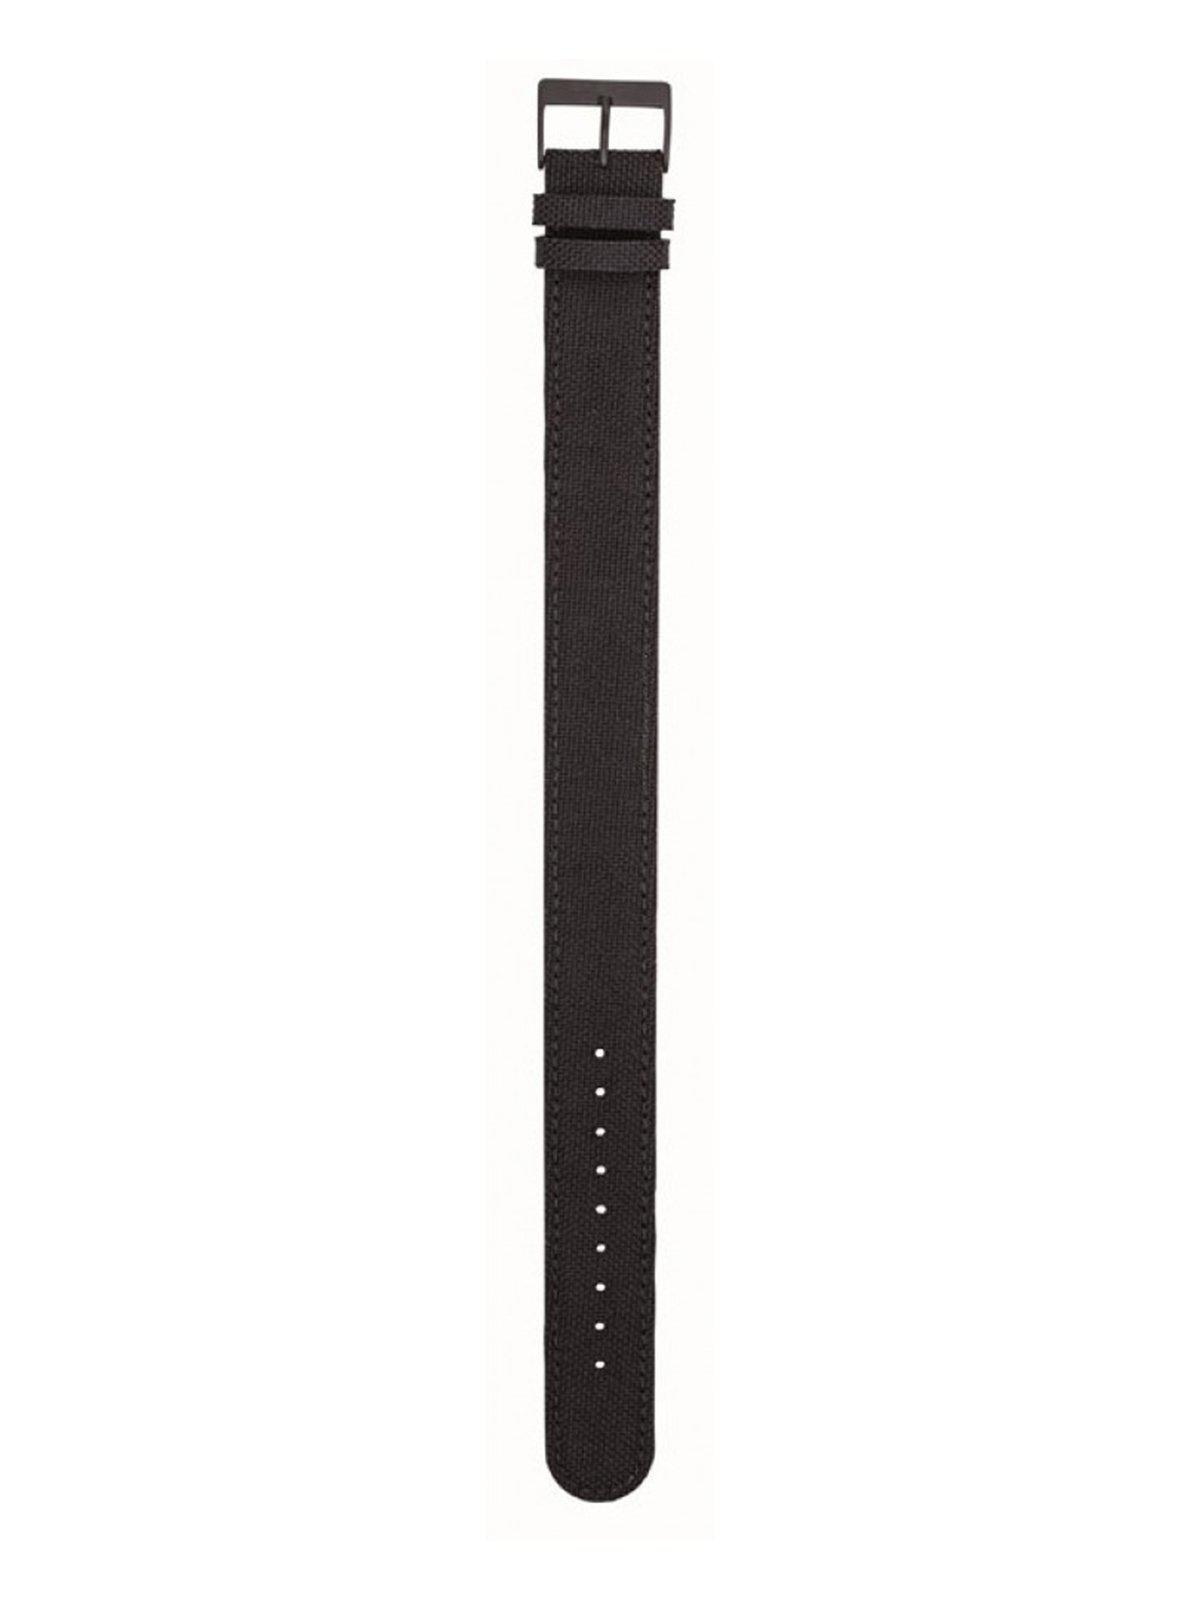 Briston Leather Canvas Strap Black PVD 20mm